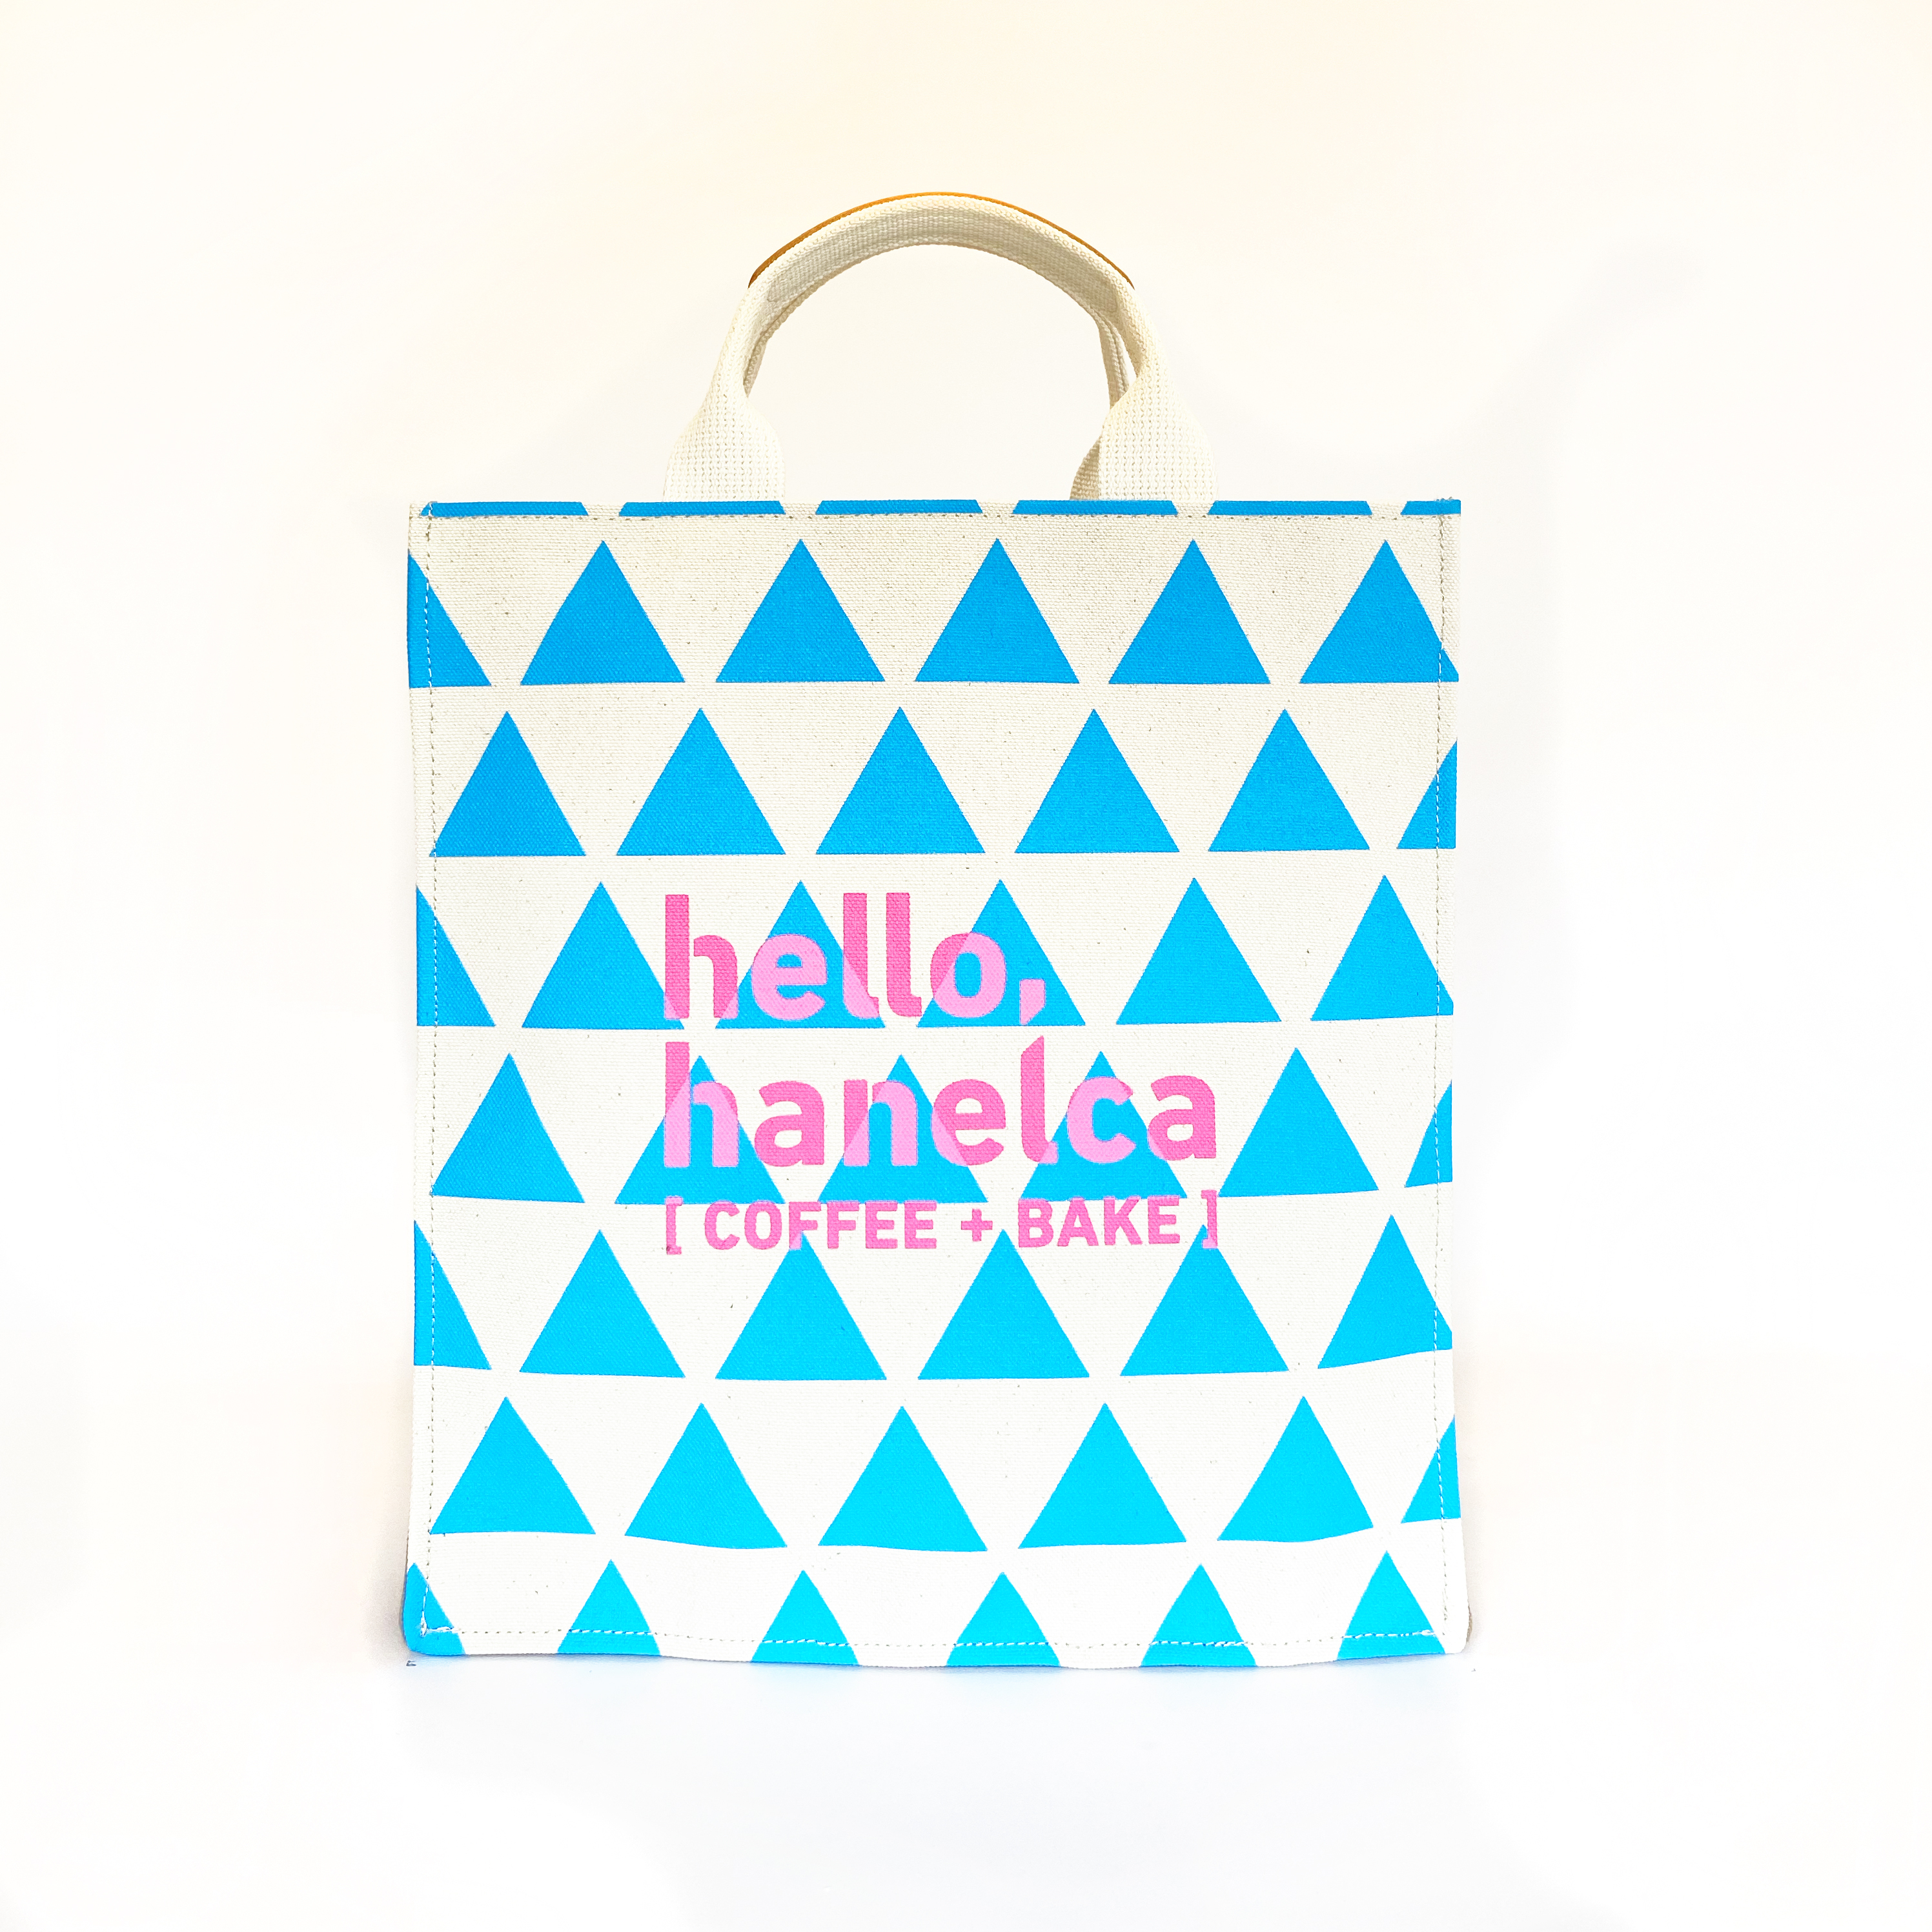 baker's tote / scale x sky   ベイカーズ・トート 空色 x 鱗